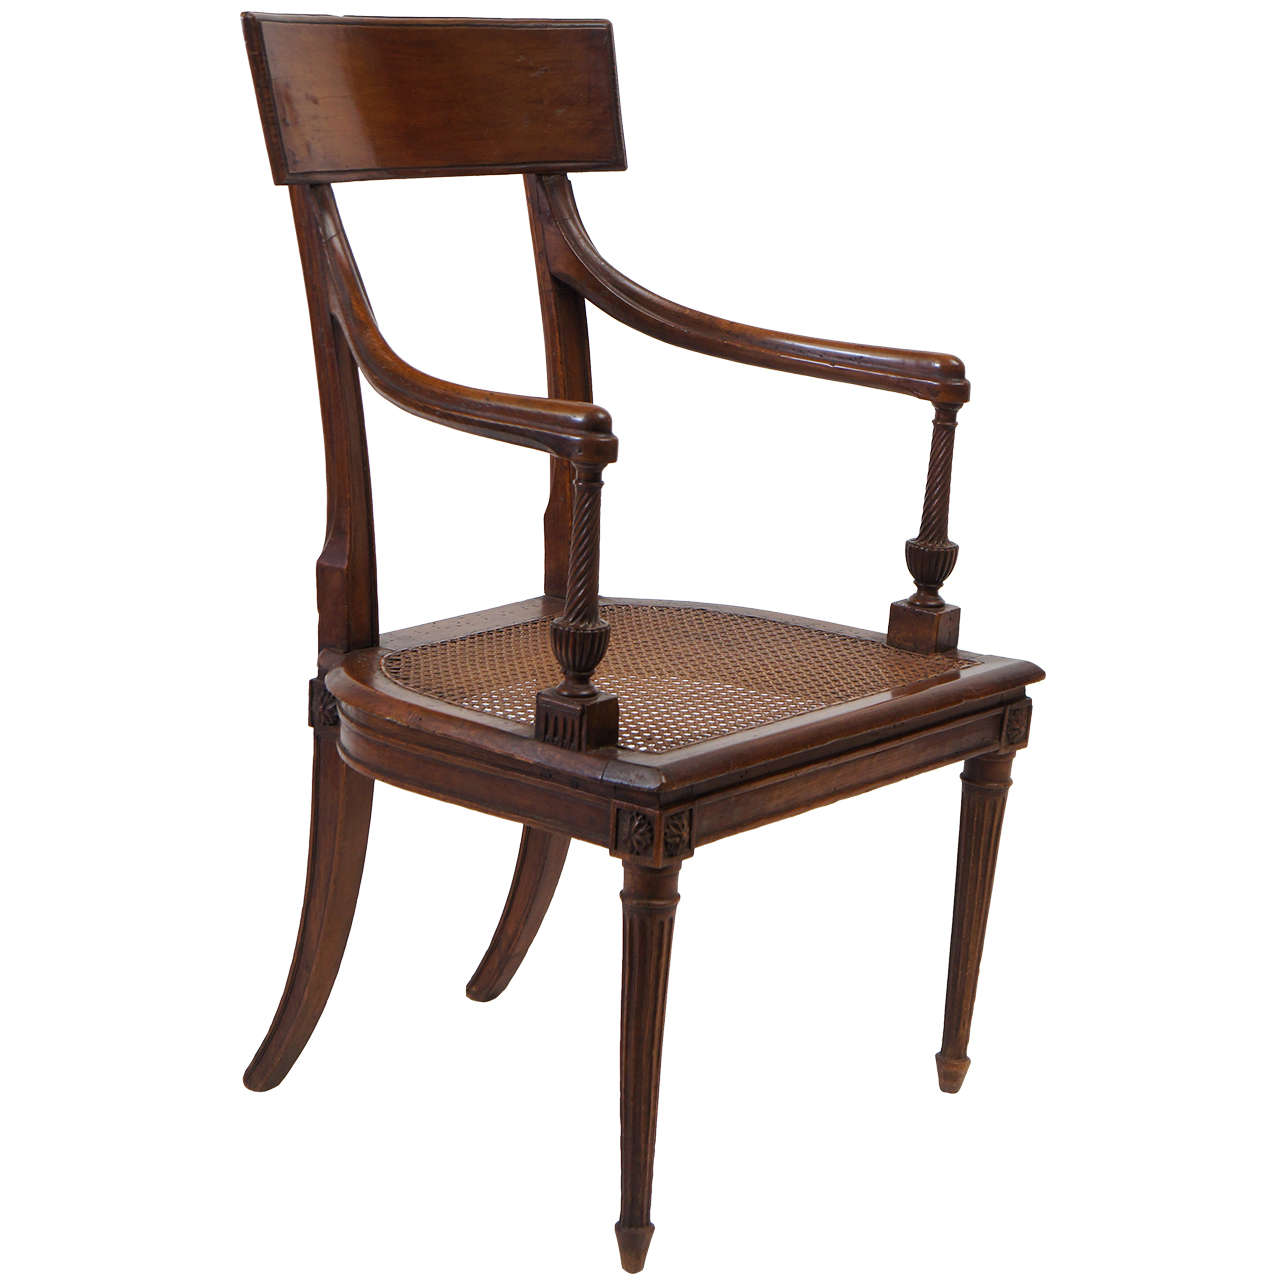 Louis XVI Fauteuil or Armchair Attributed to Georges Jacob, France ...